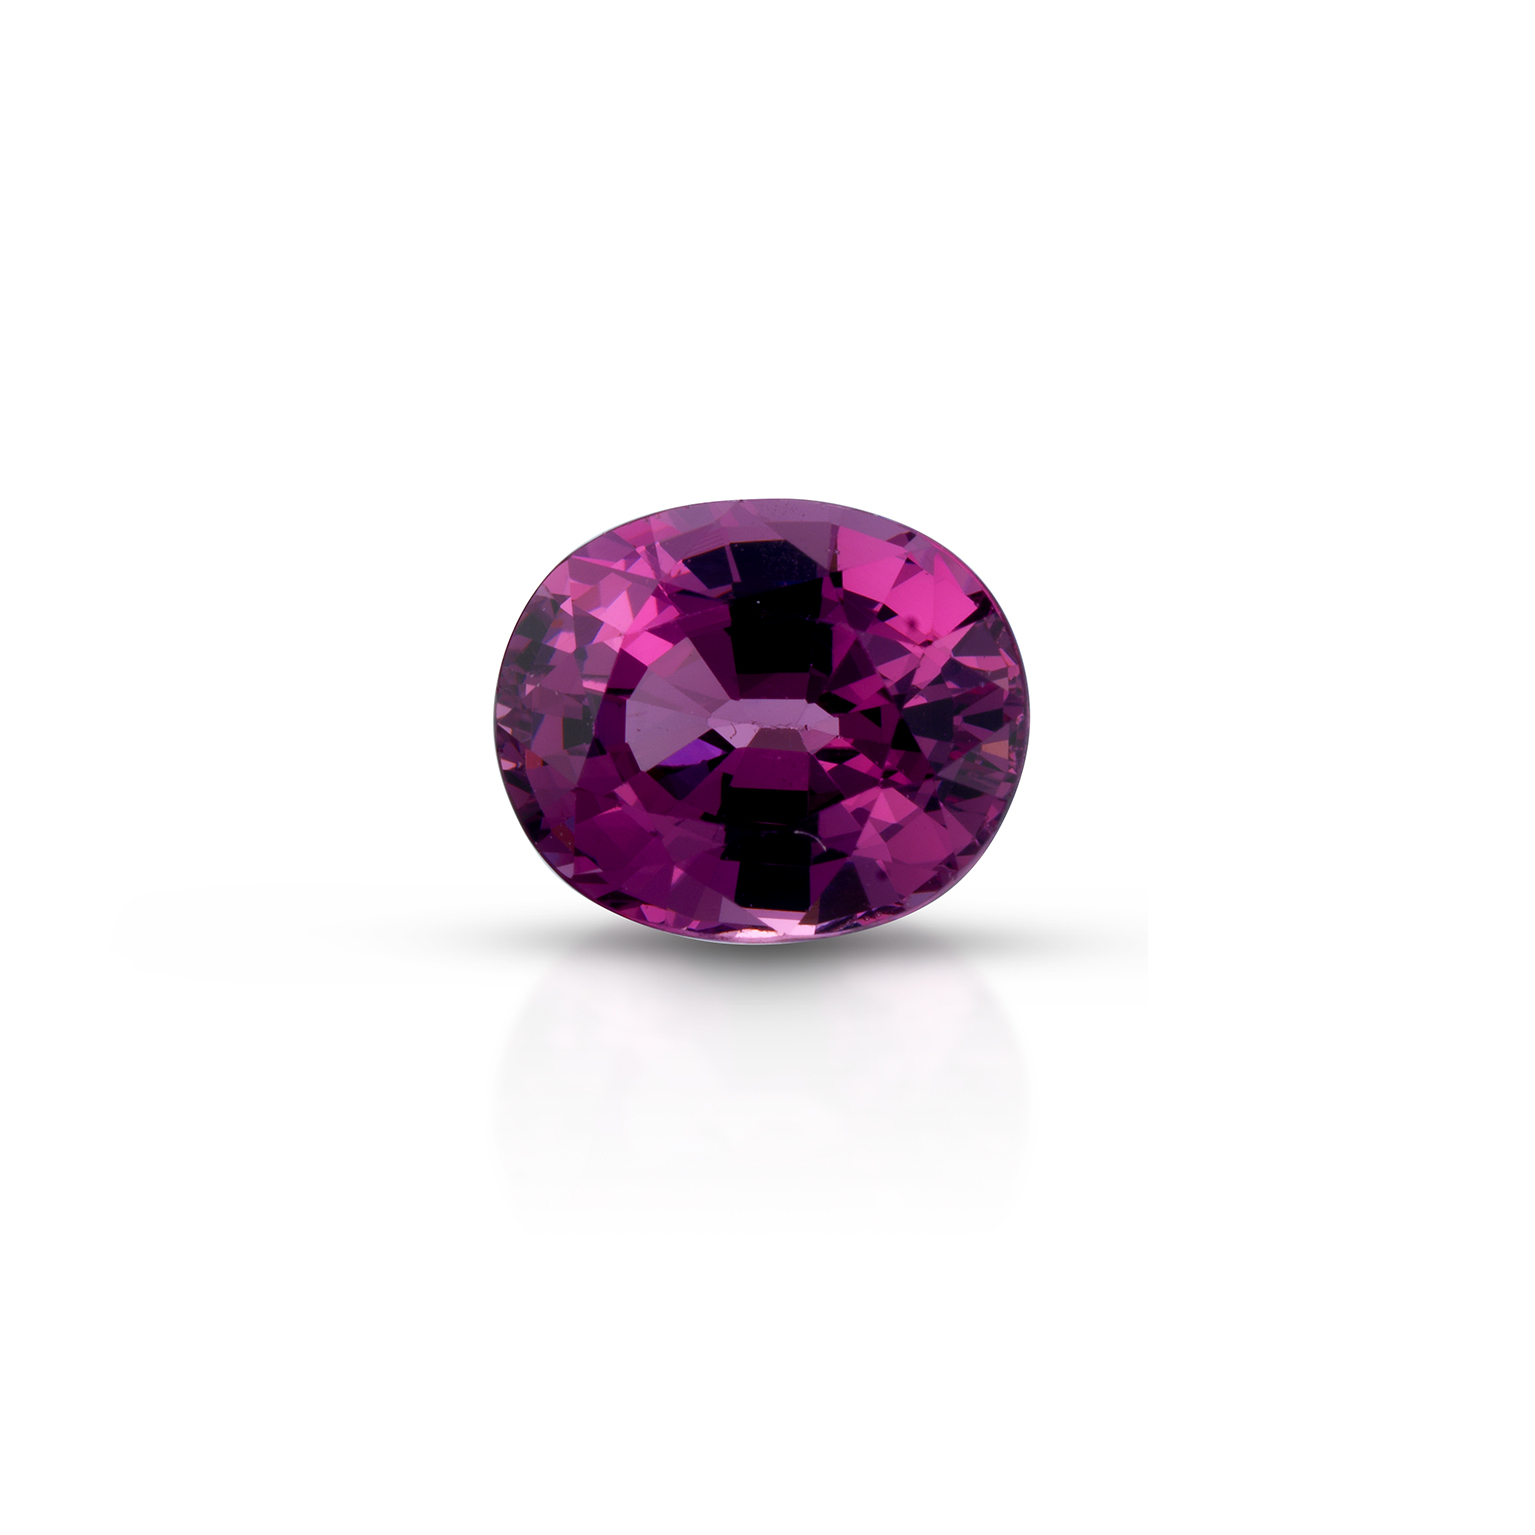 ClaudiaHamann_Spinel_Tanzania_StepCut_Oval_4,47cts_snf14c26